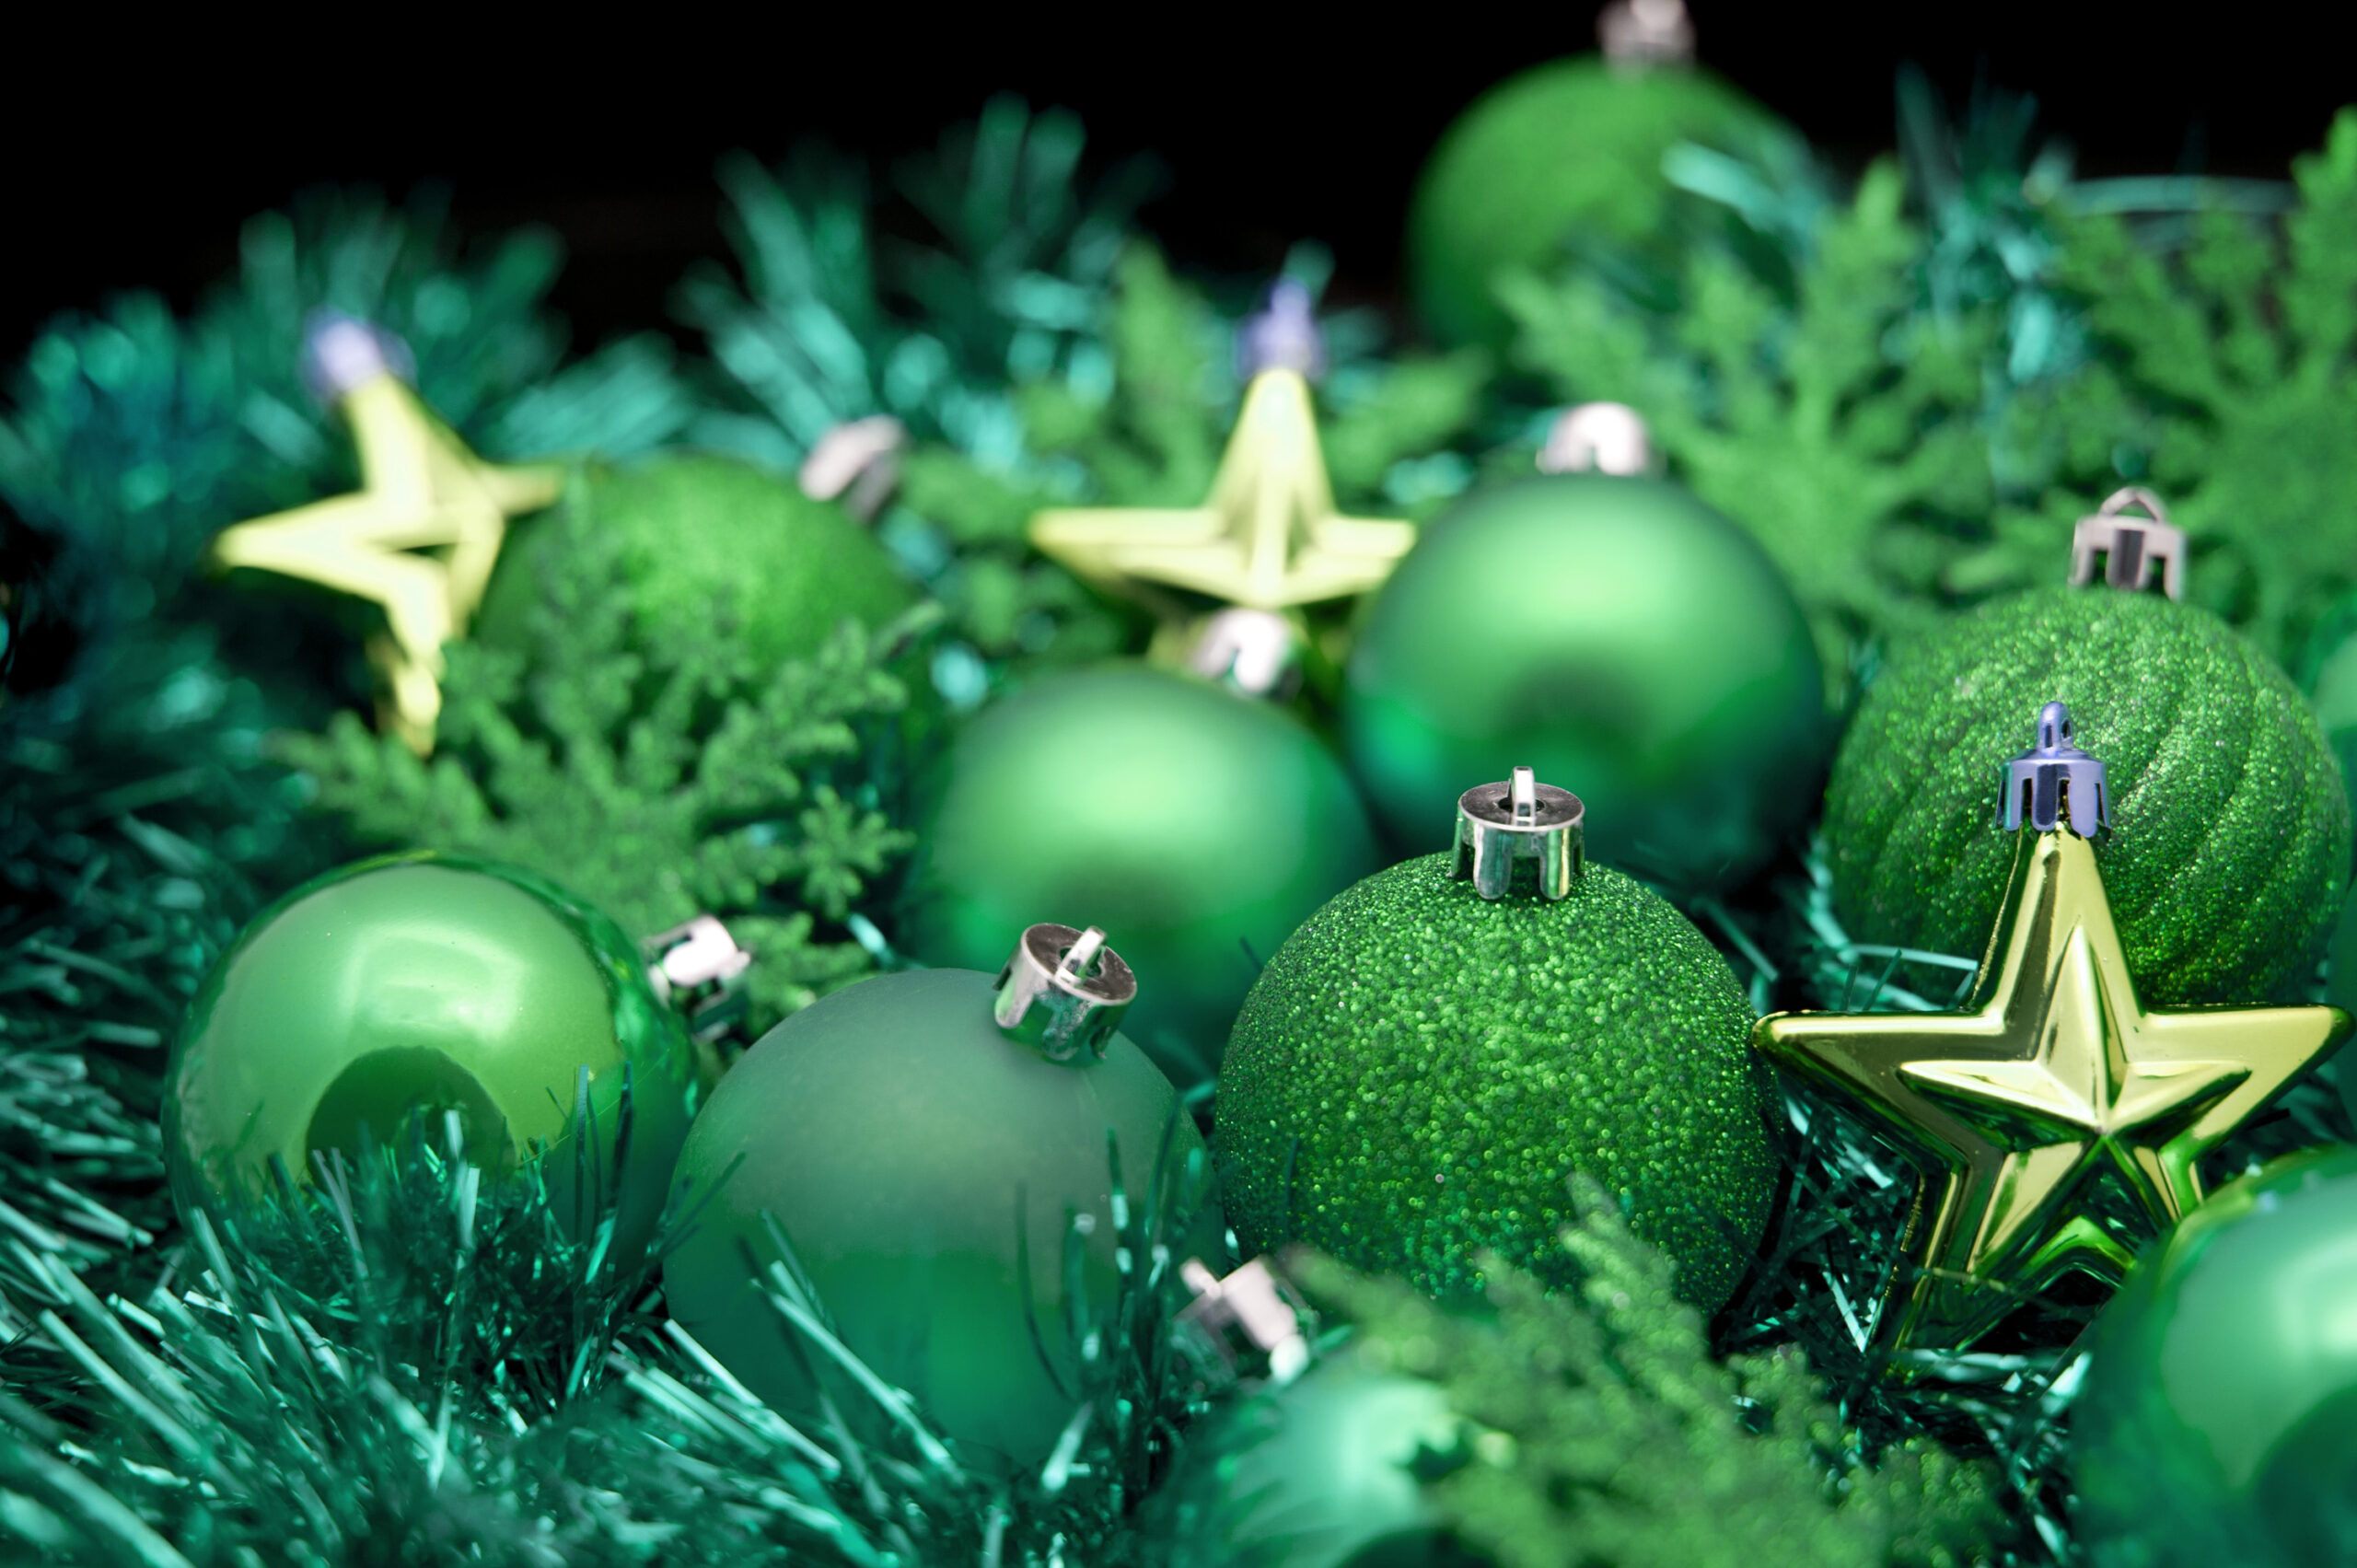 http://wallpapers9.org/wp-content/uploads/2014/12/Green-Christmas-Background-2.jpg